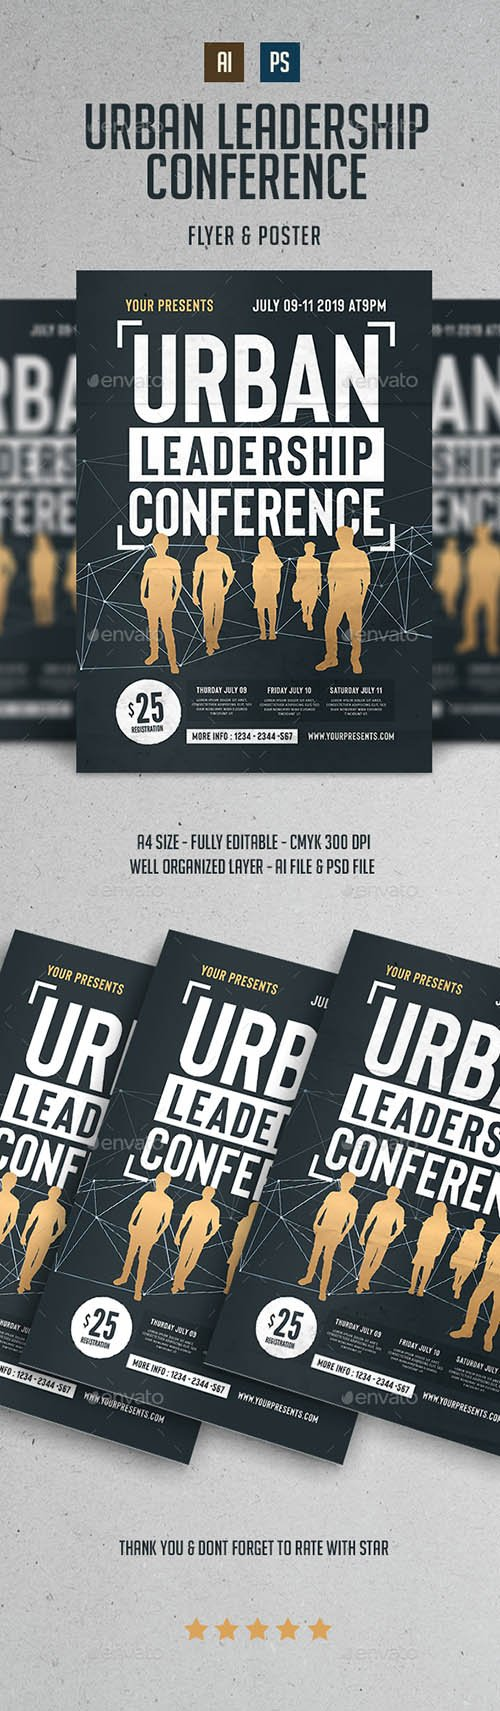 GR - Urban Leadership Conference Flyer 22302542